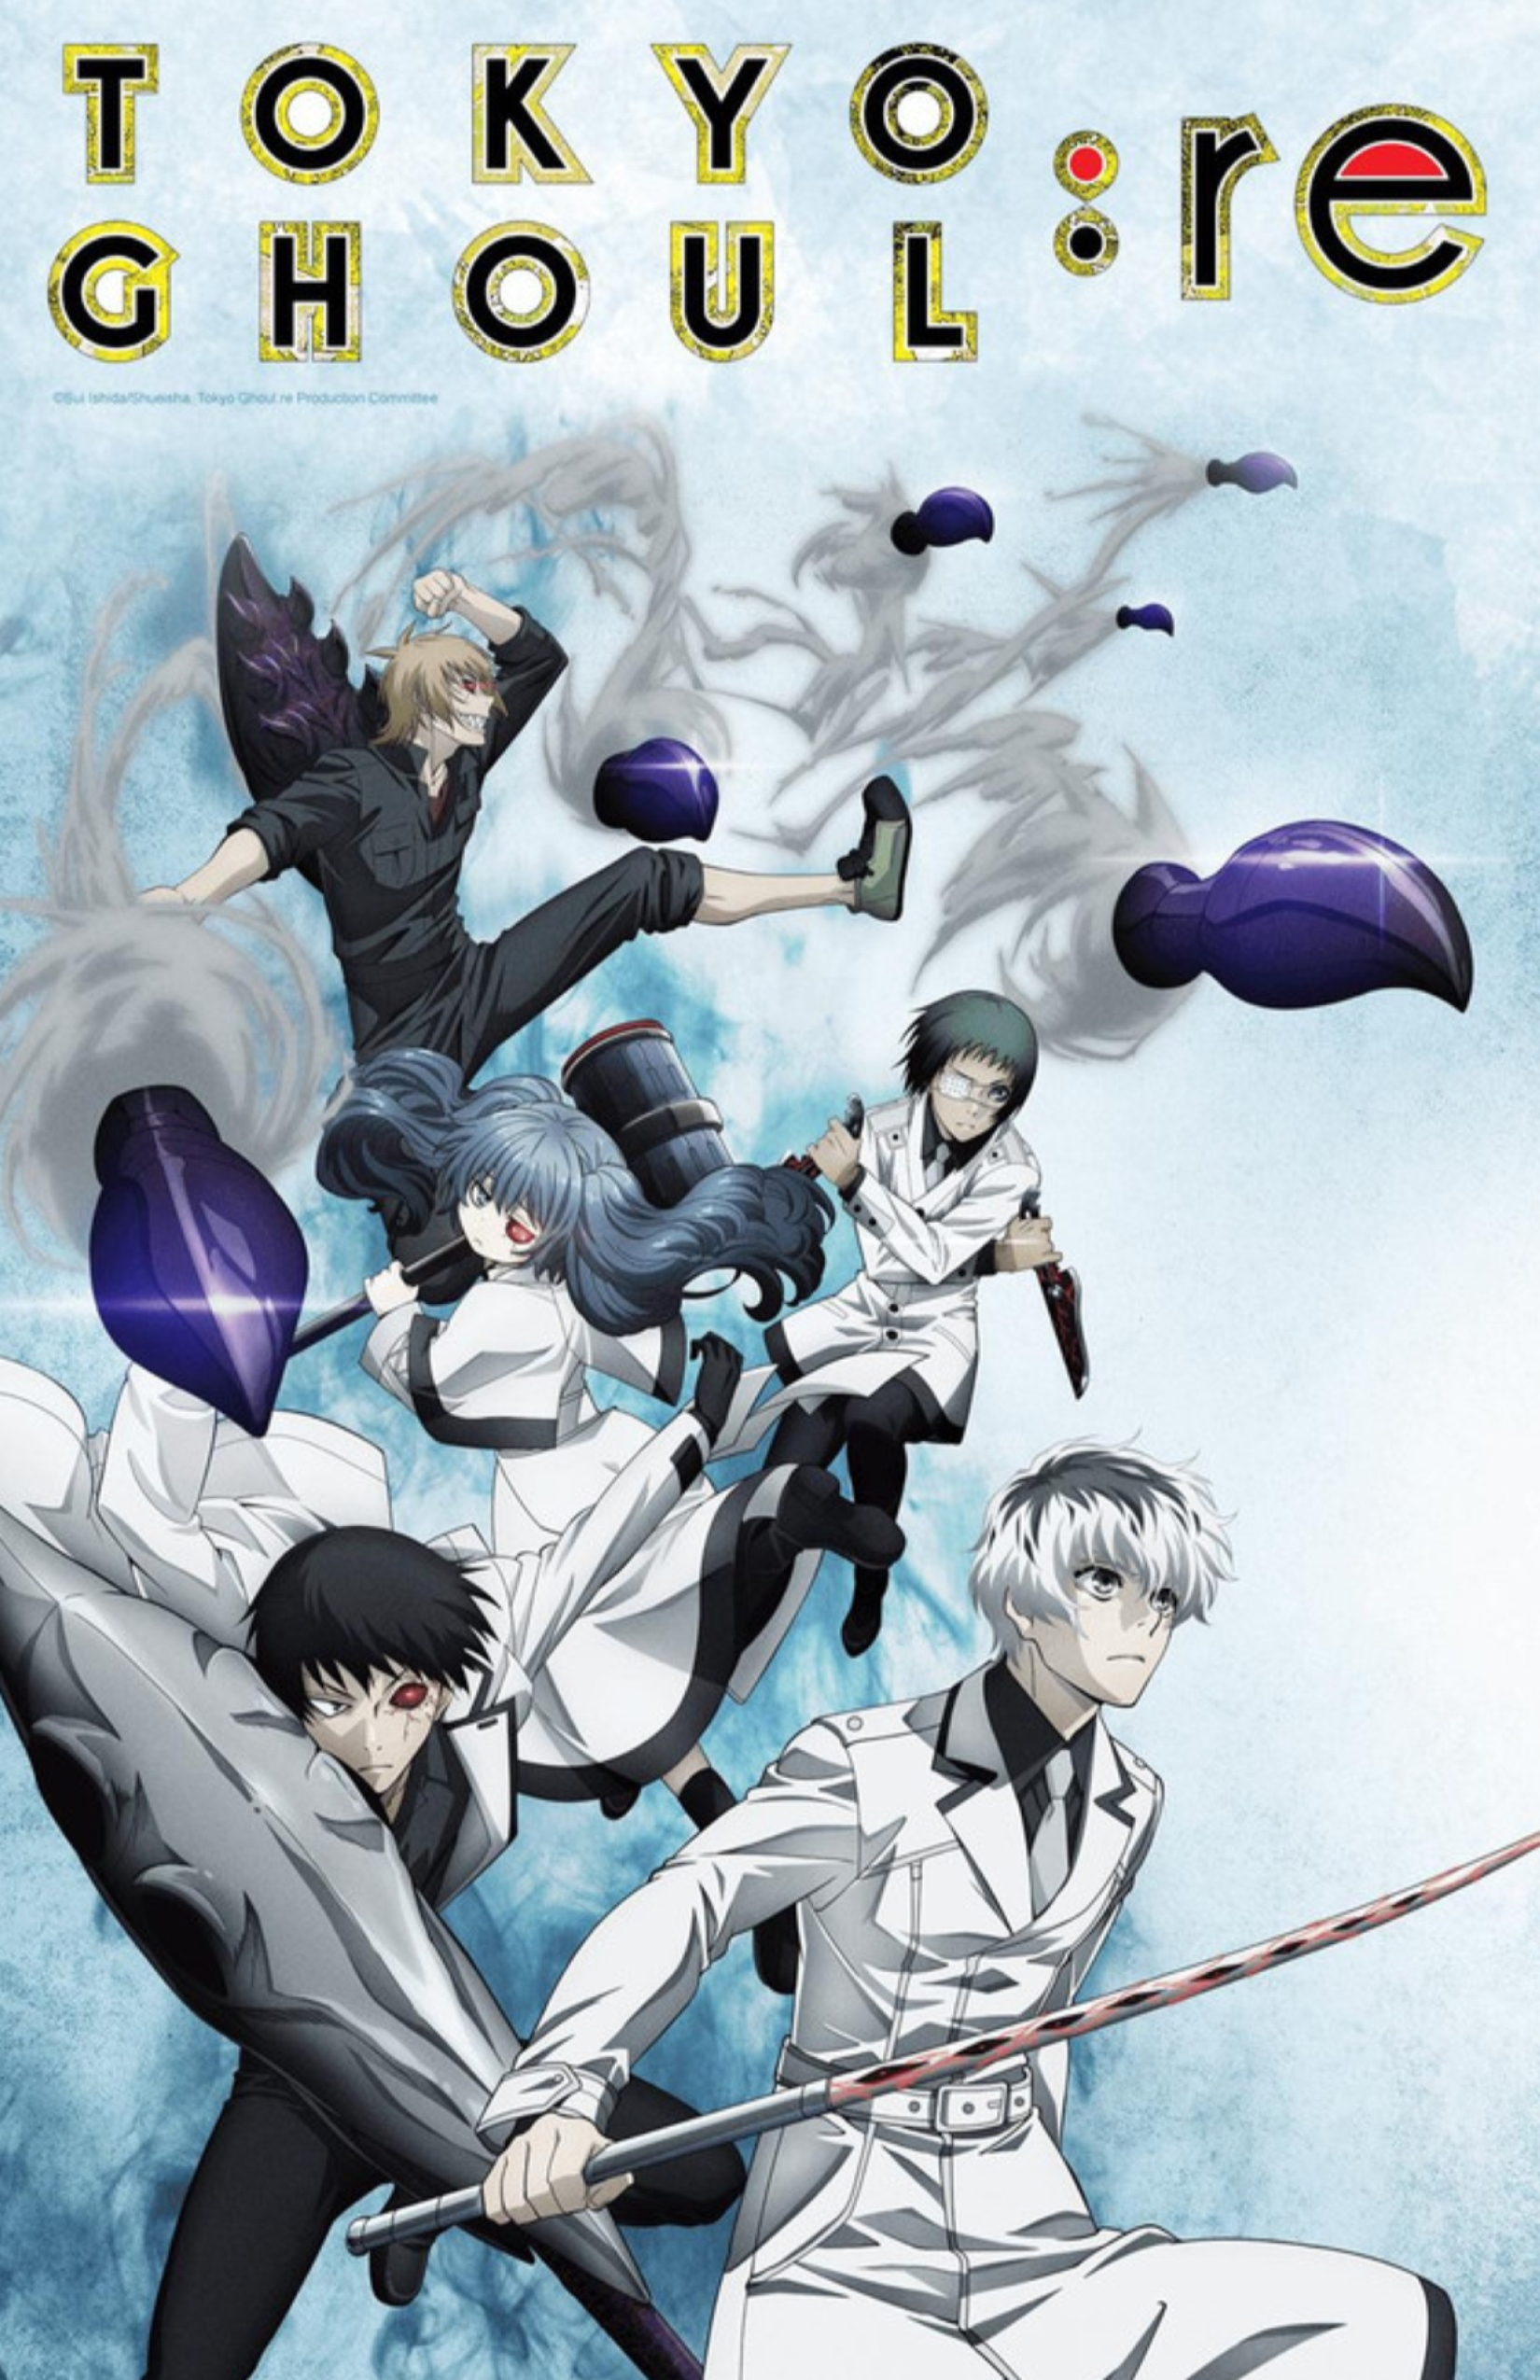 Tokyo Ghoul:re Subtitle Indonesia Batch Episode 01-12 END